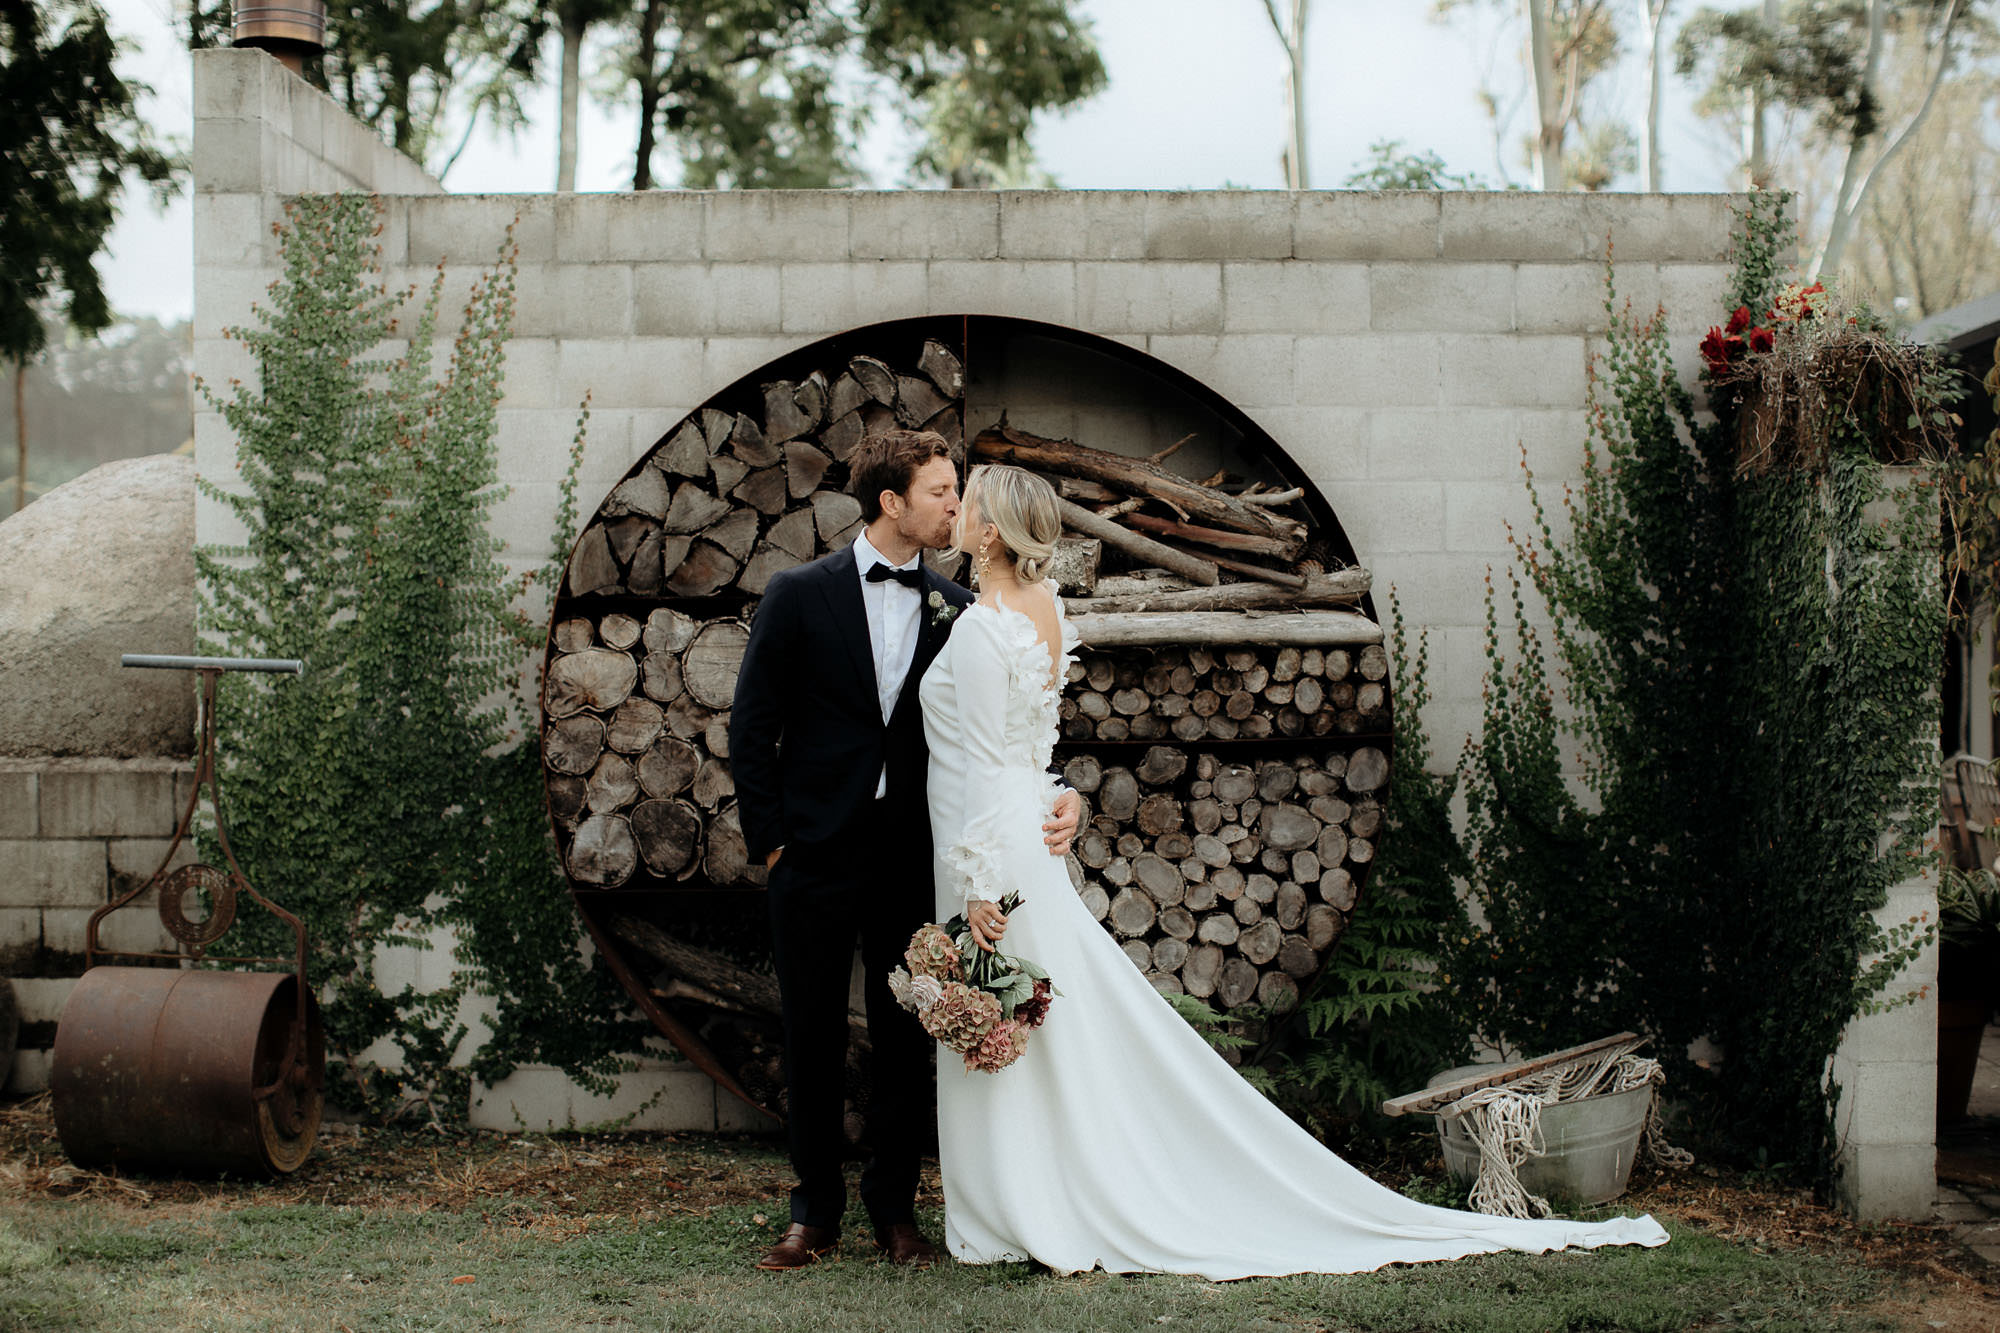 Categories: Weddings-Maggie and Matthew- Photography by Chasewild